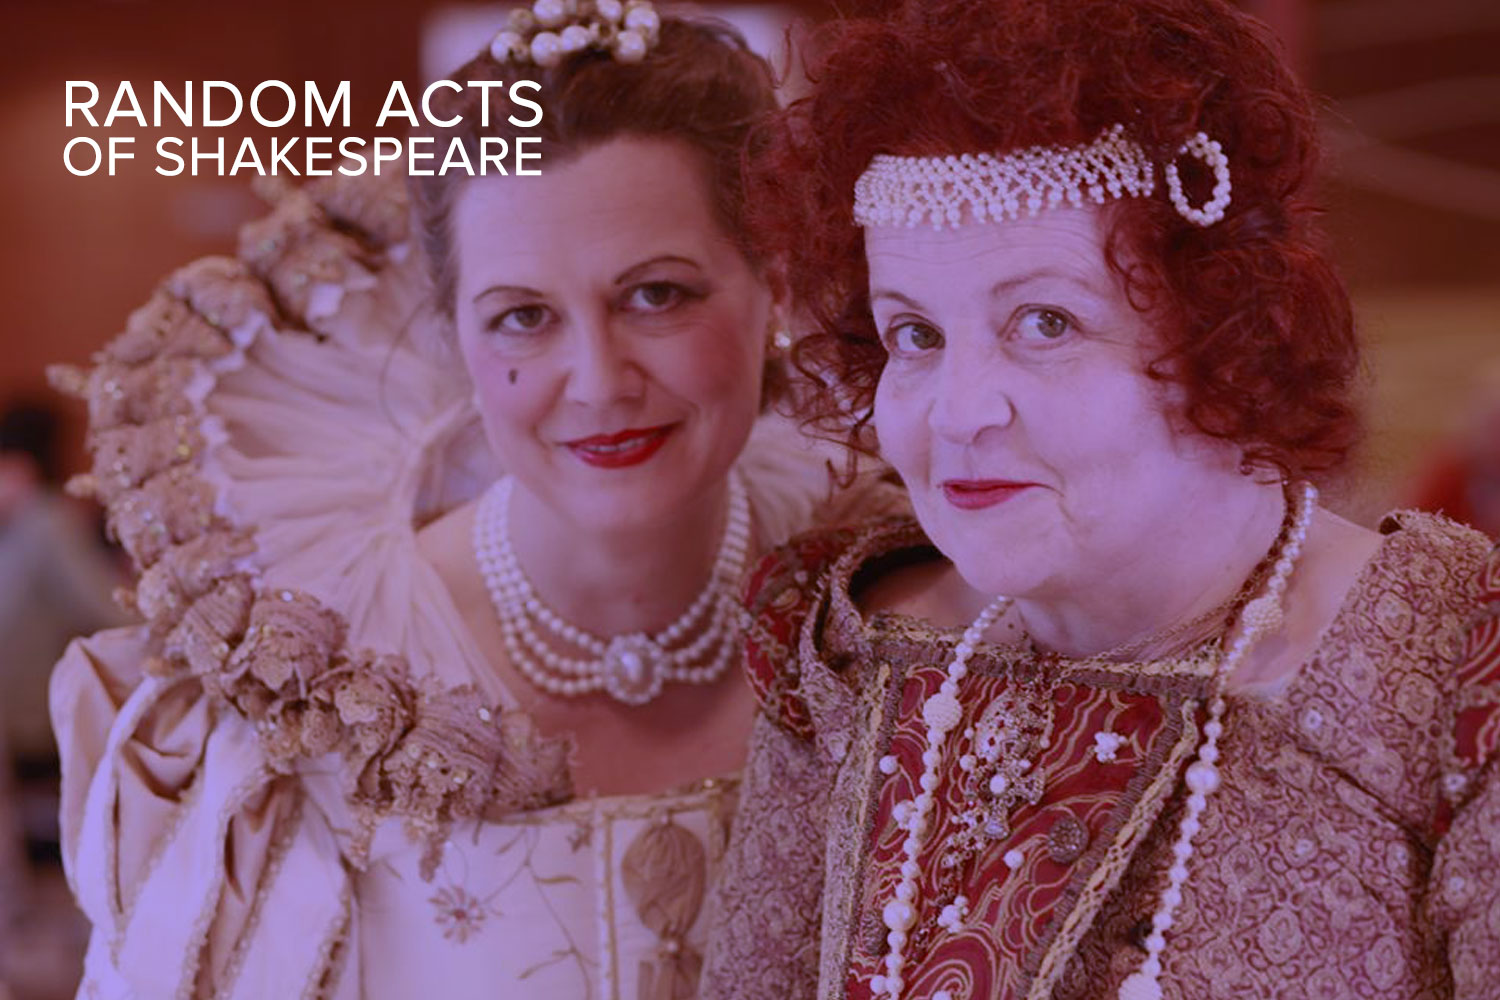 Random Acts of Shakespeare